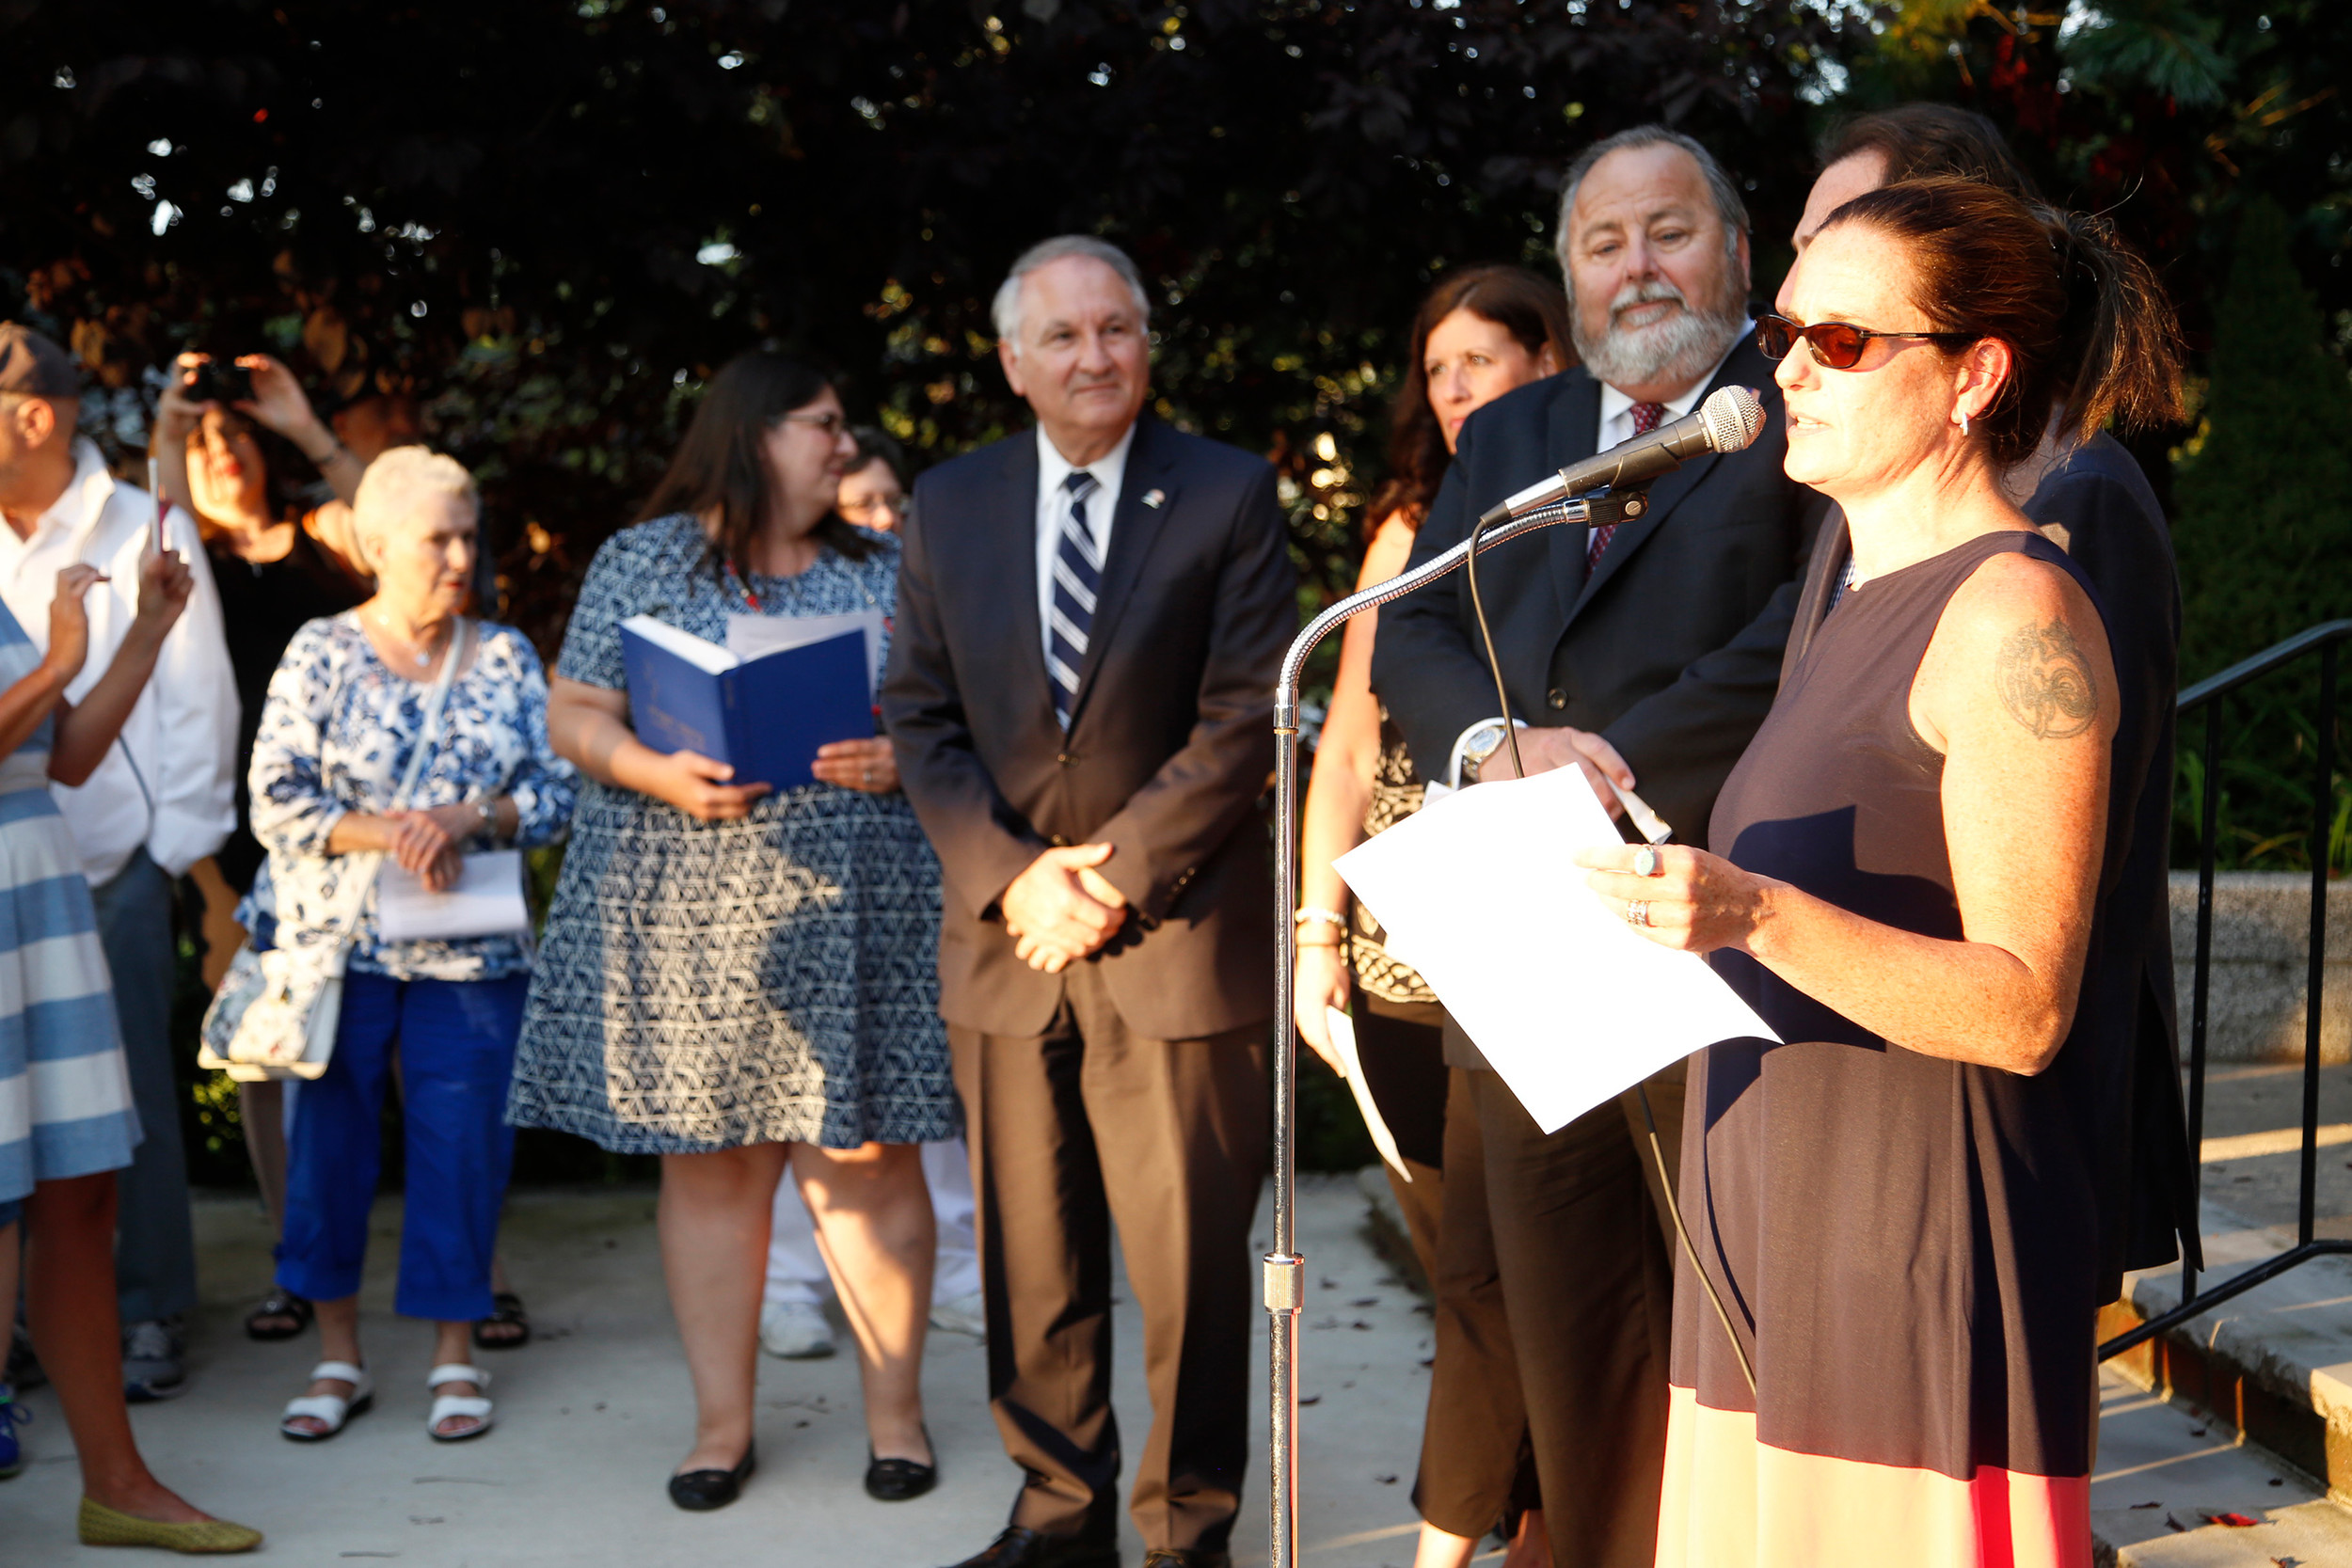 Emma Travers, co-founder of Rockville Centre group Raising Voices USA, who organized the vigil, addressed the crowd.